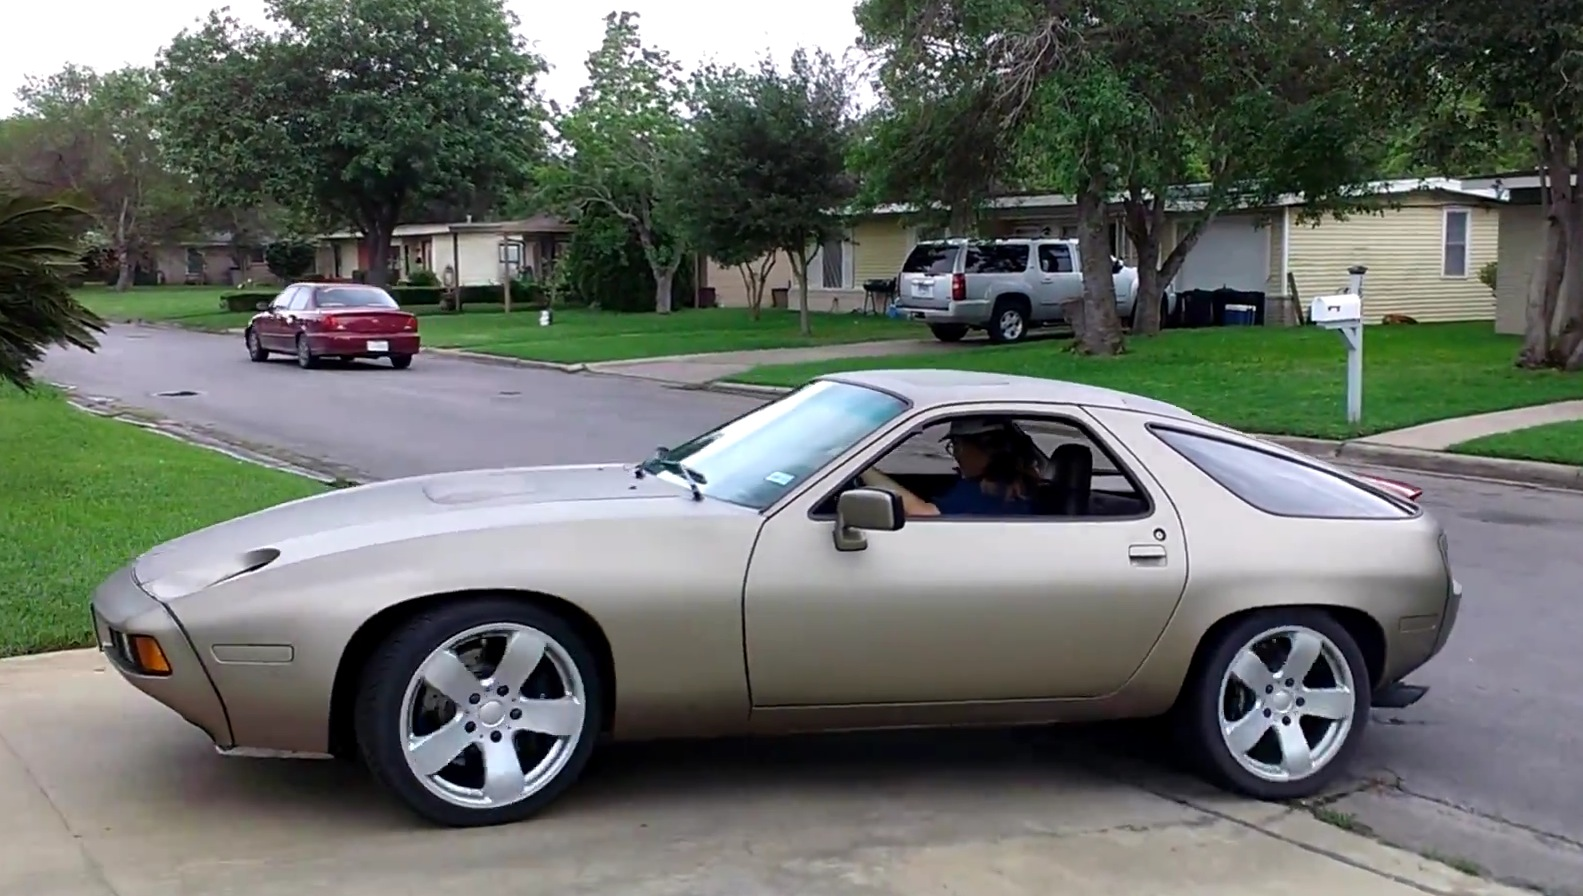 Intercontinental Engine Swap Porsche 928 With Rare Toyota